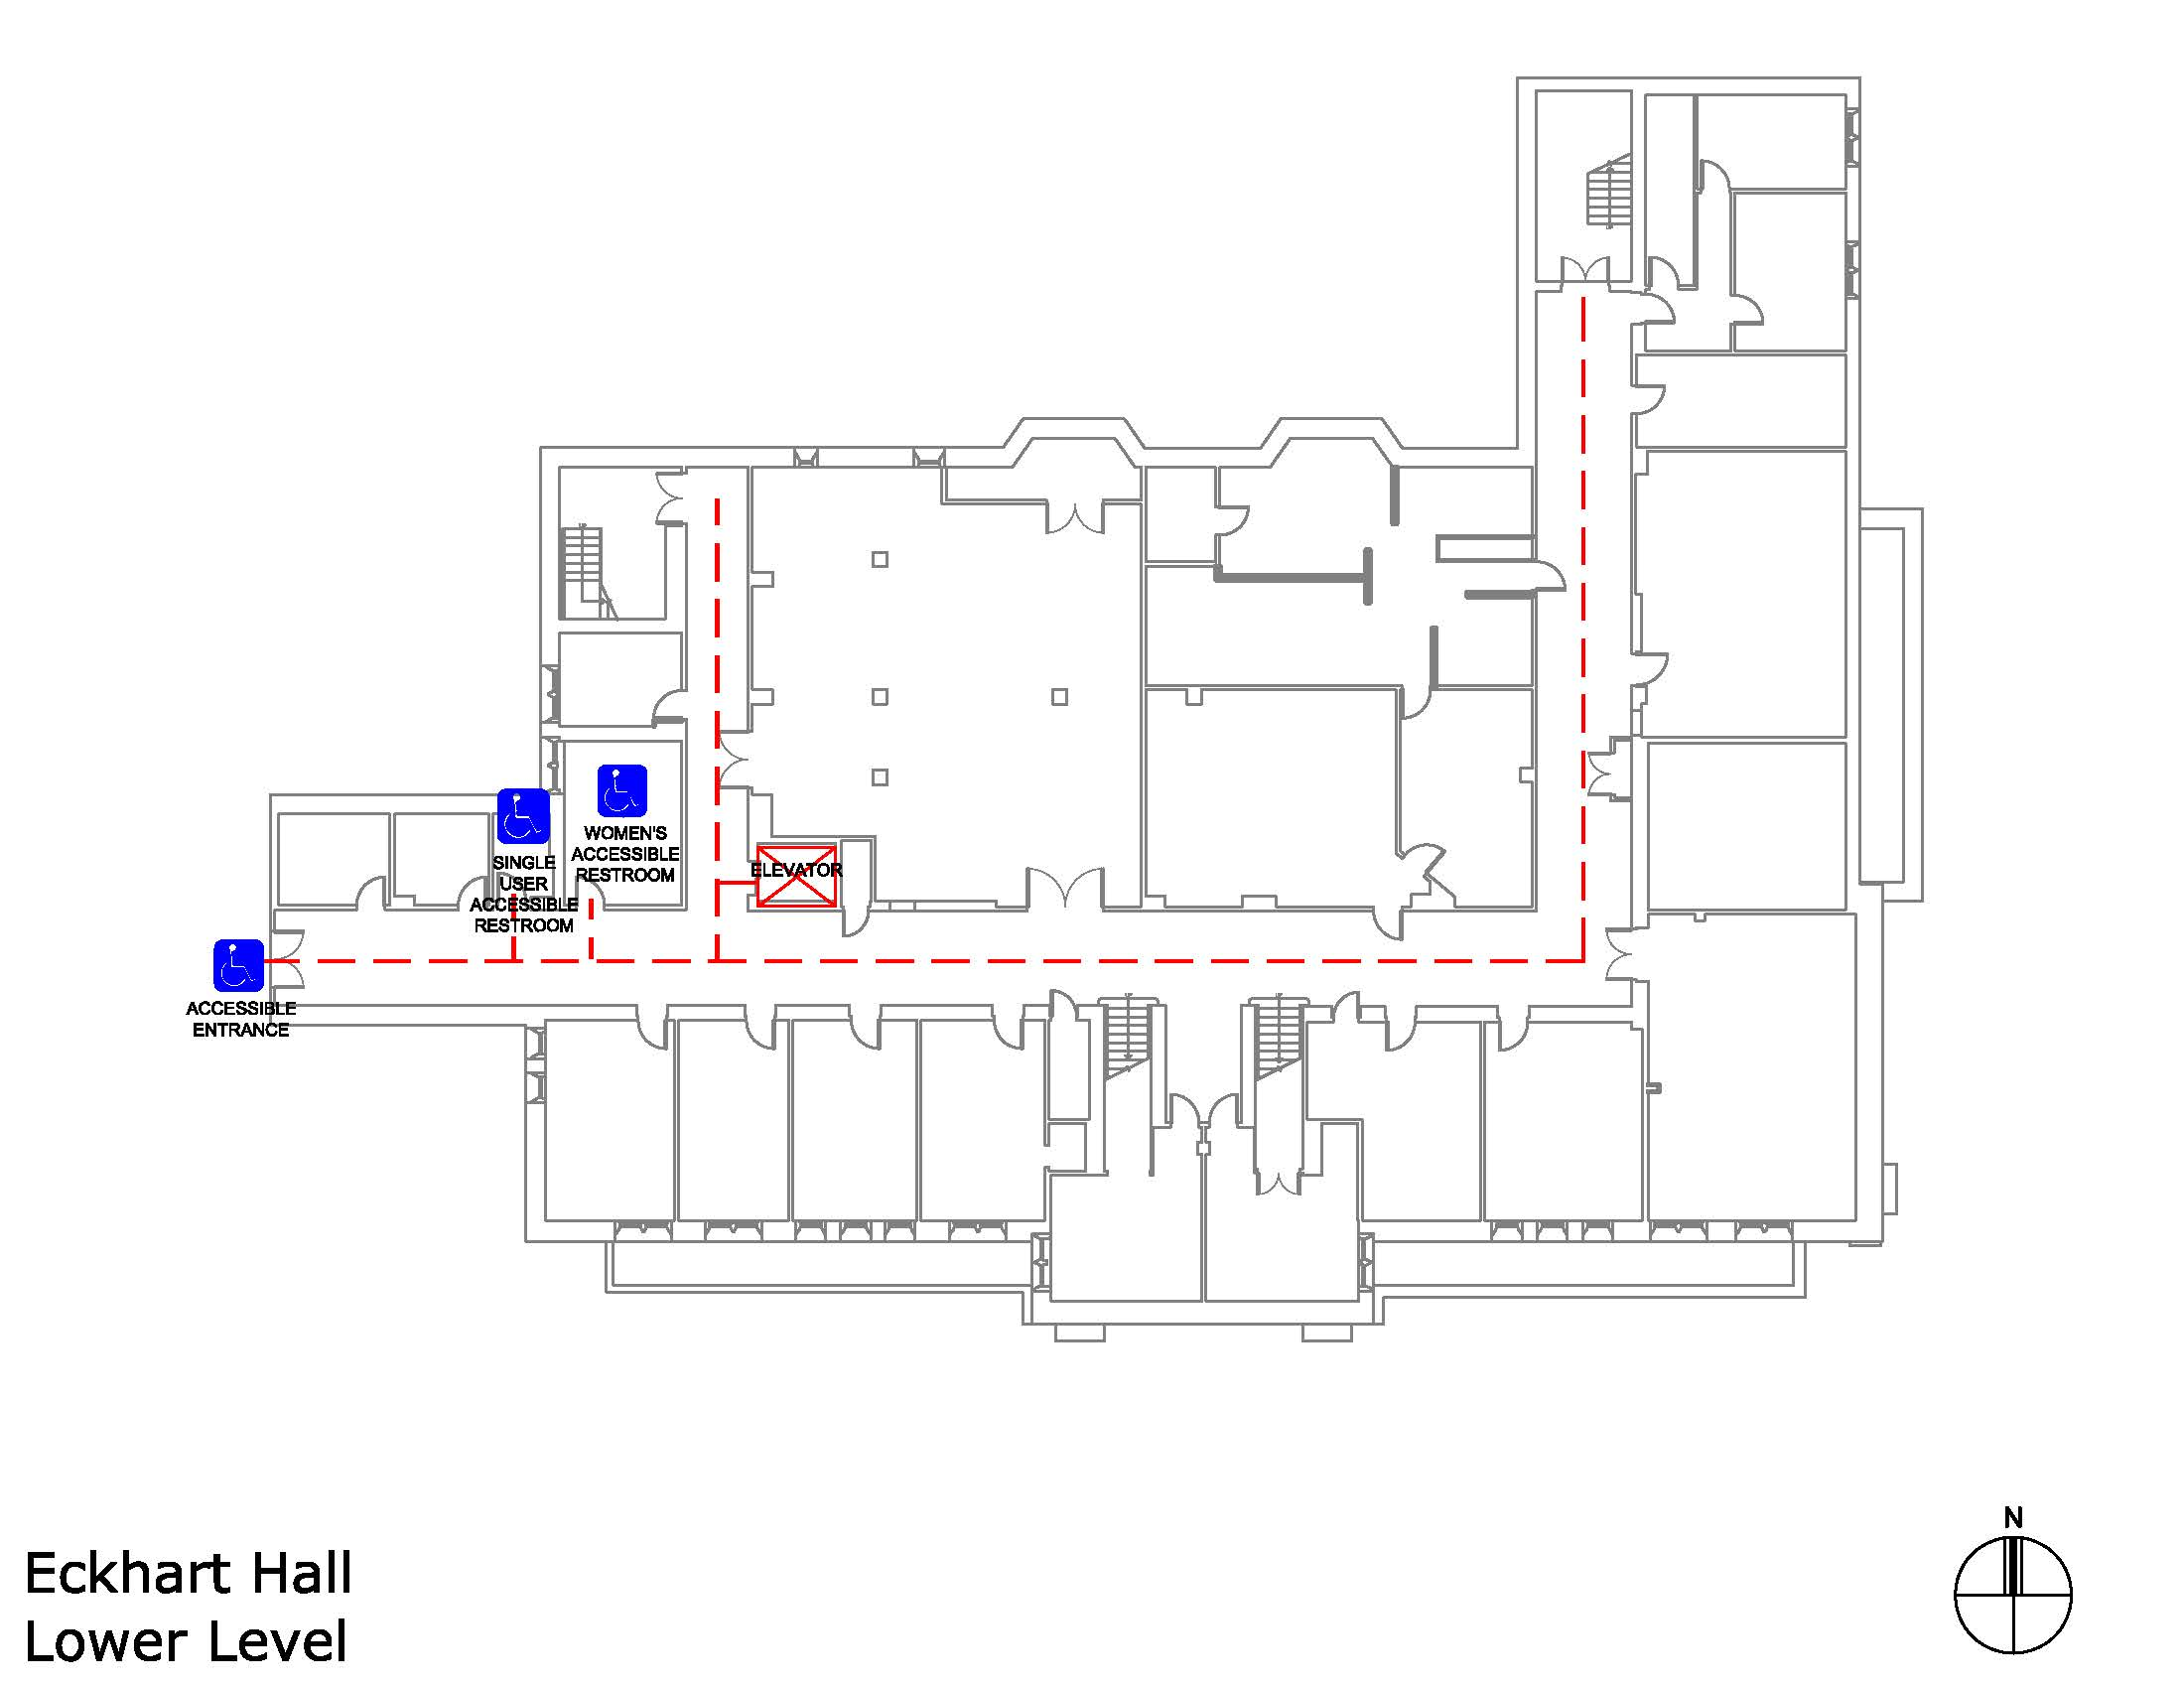 Eckhart Hall lower level accessible areas